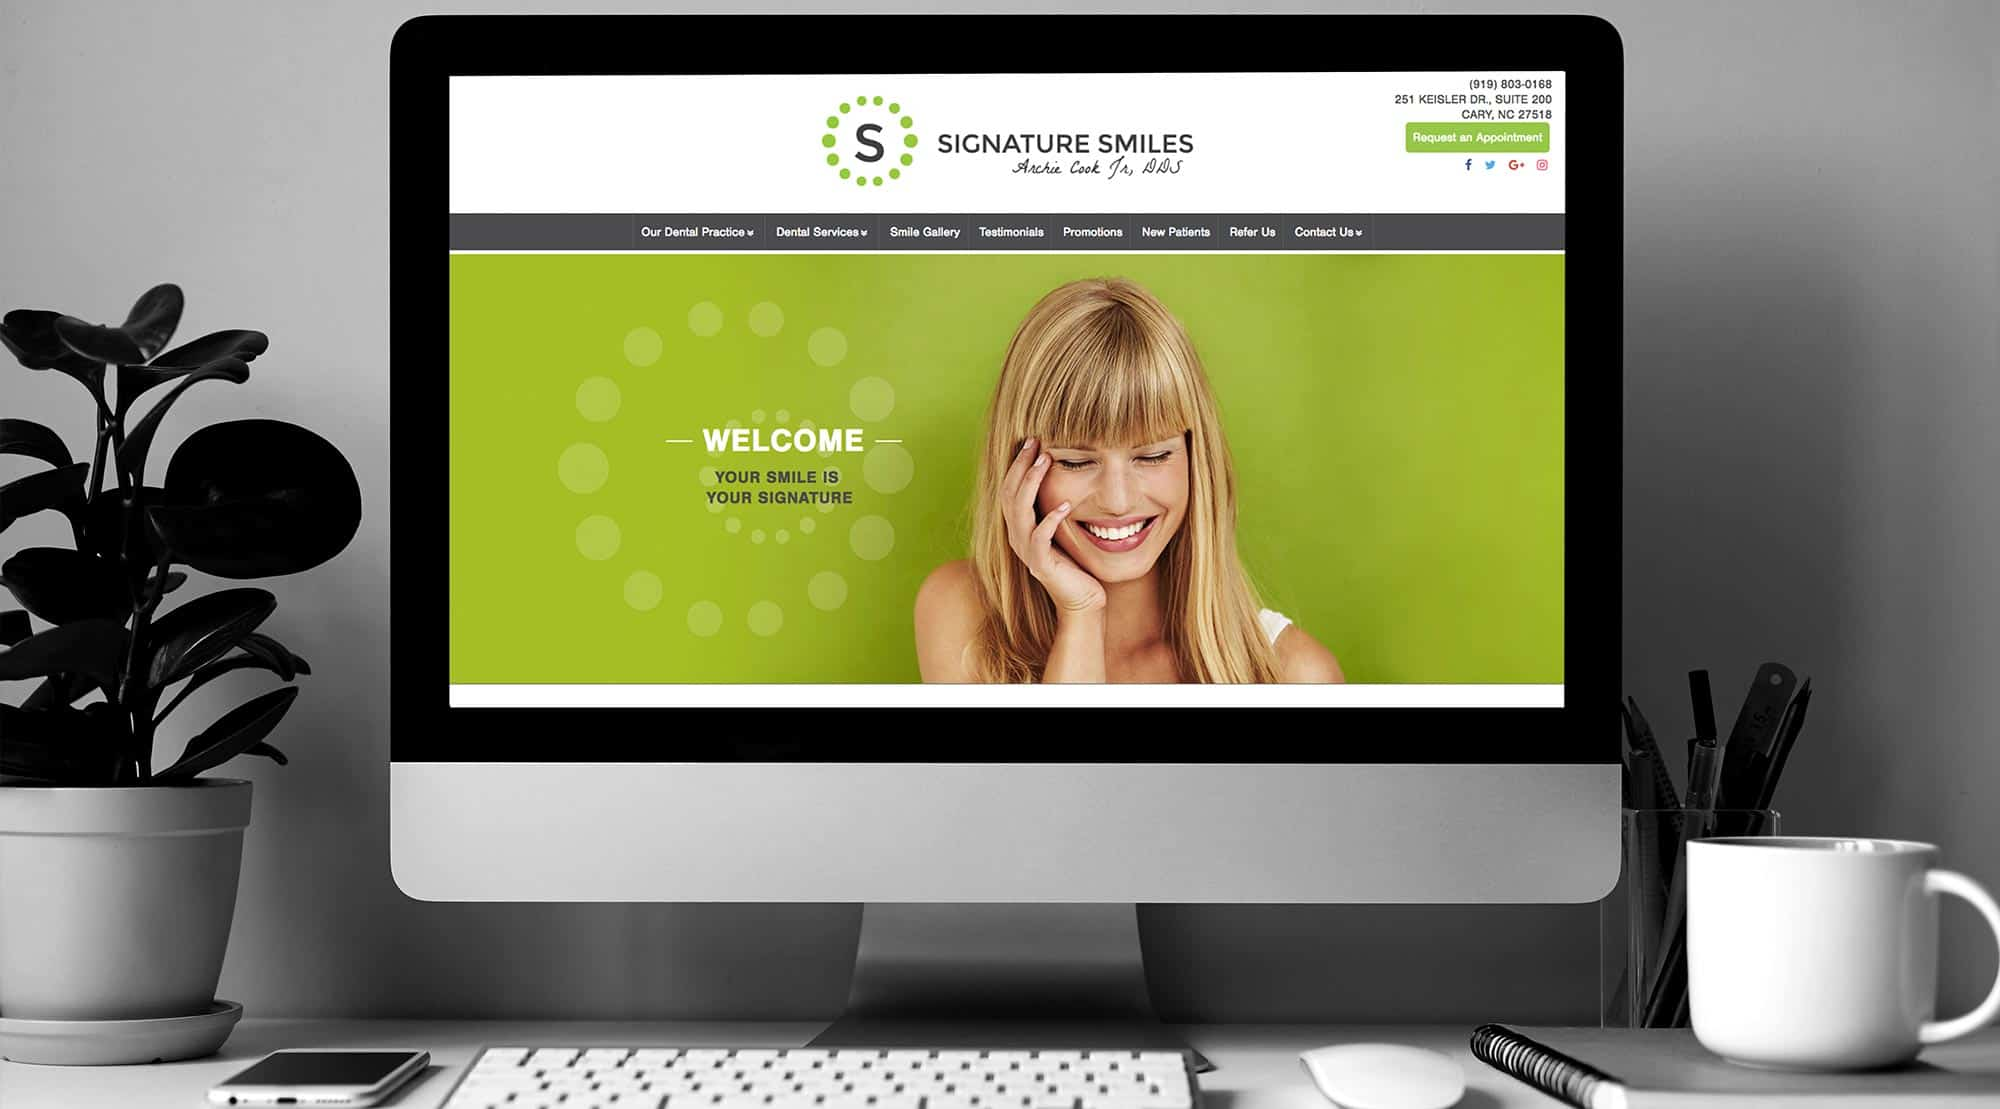 dental website example signature smiles